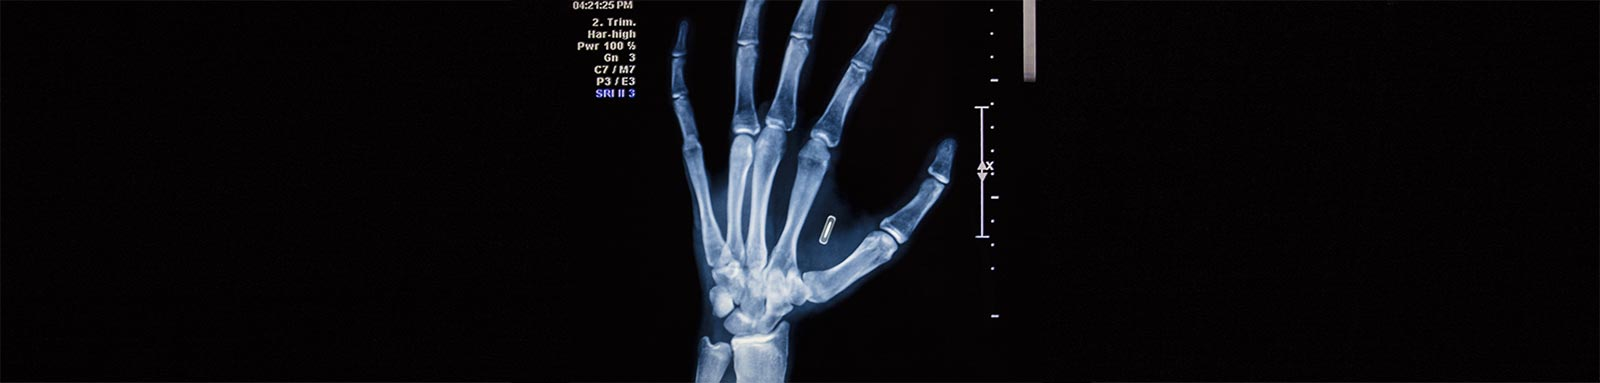 Xray of hand with microchip